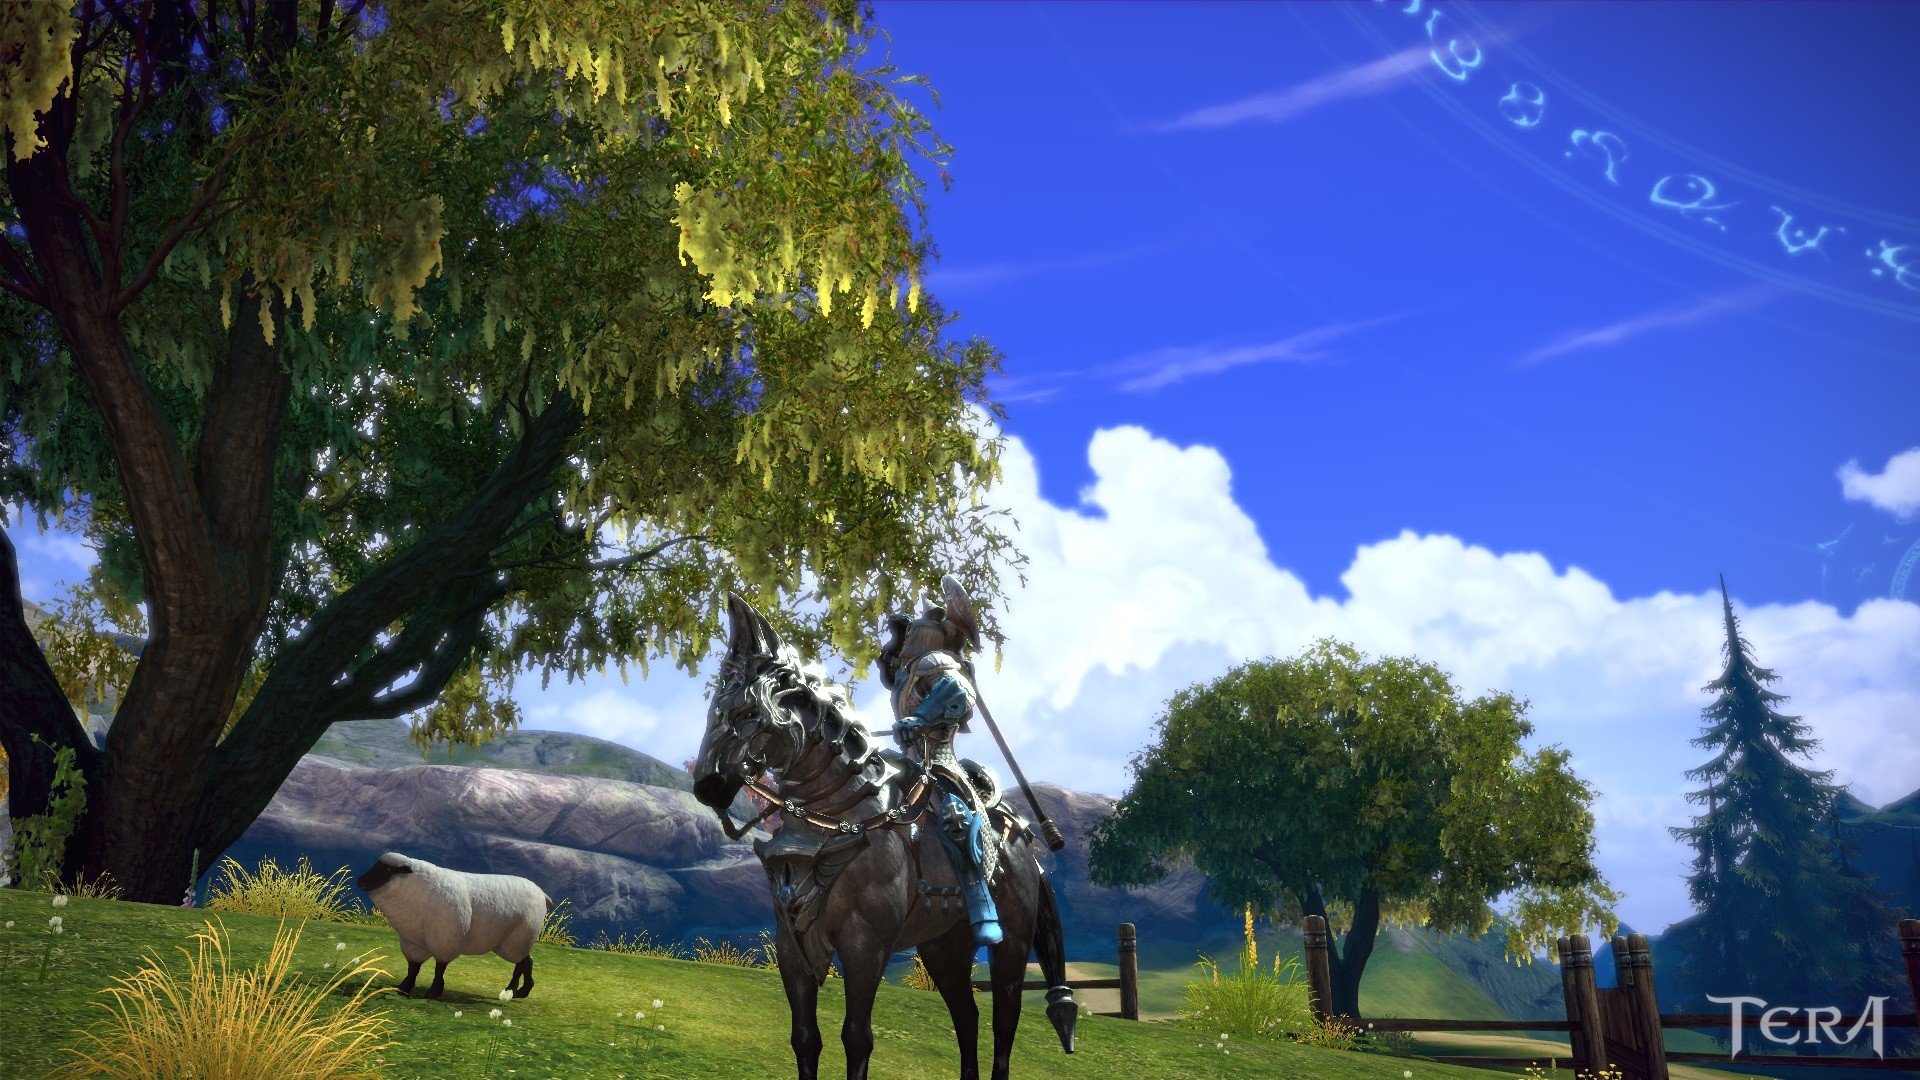 TERA - Hmm... no one would probably notice if i nab me a sheep... ... or two...